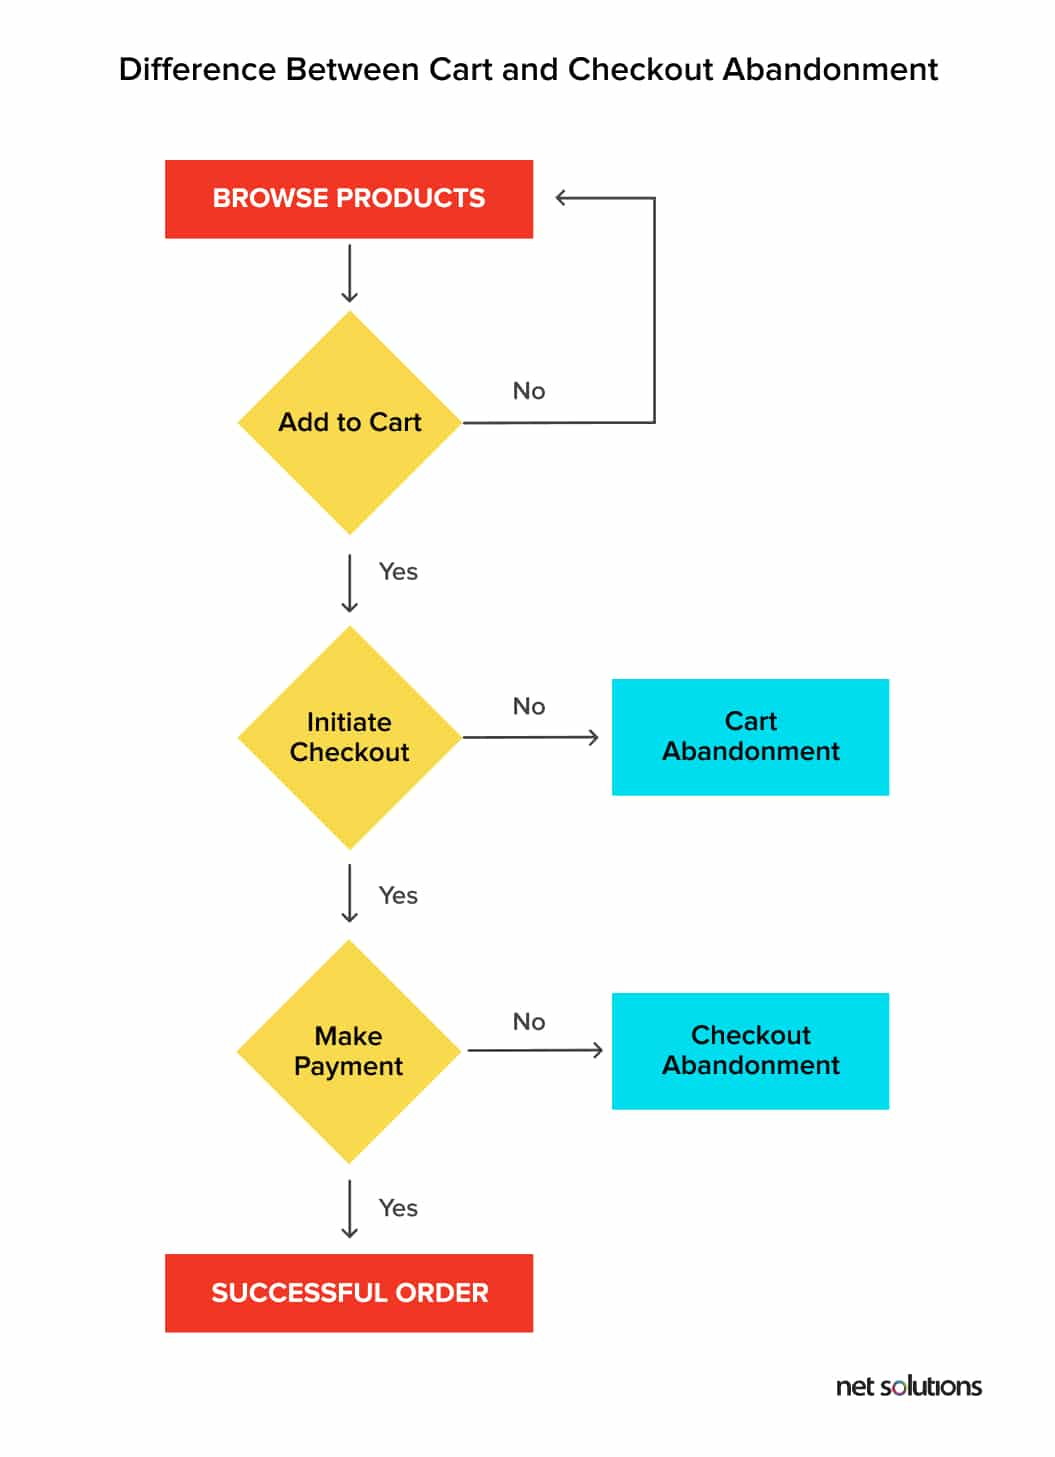 Difference between cart abandonment and checkout abandonment